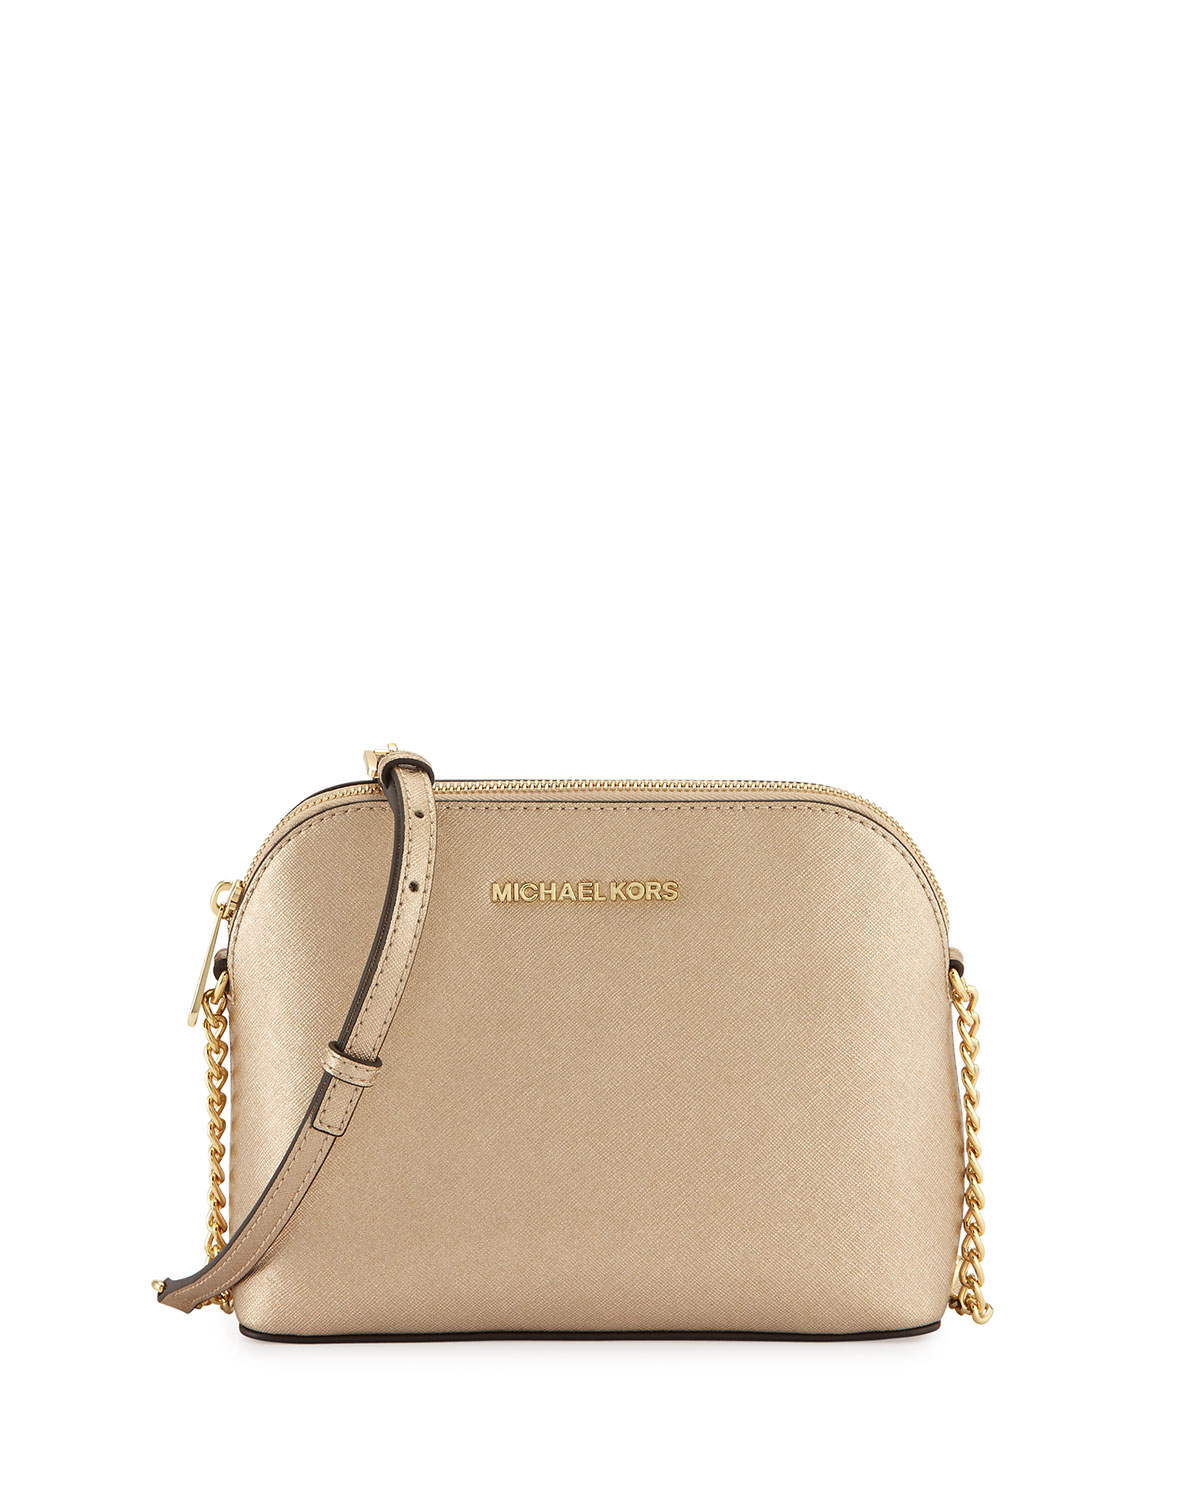 c8f52dba888ecd MICHAEL Michael Kors Cindy Large Dome Crossbody Bag, Pale Gold ...